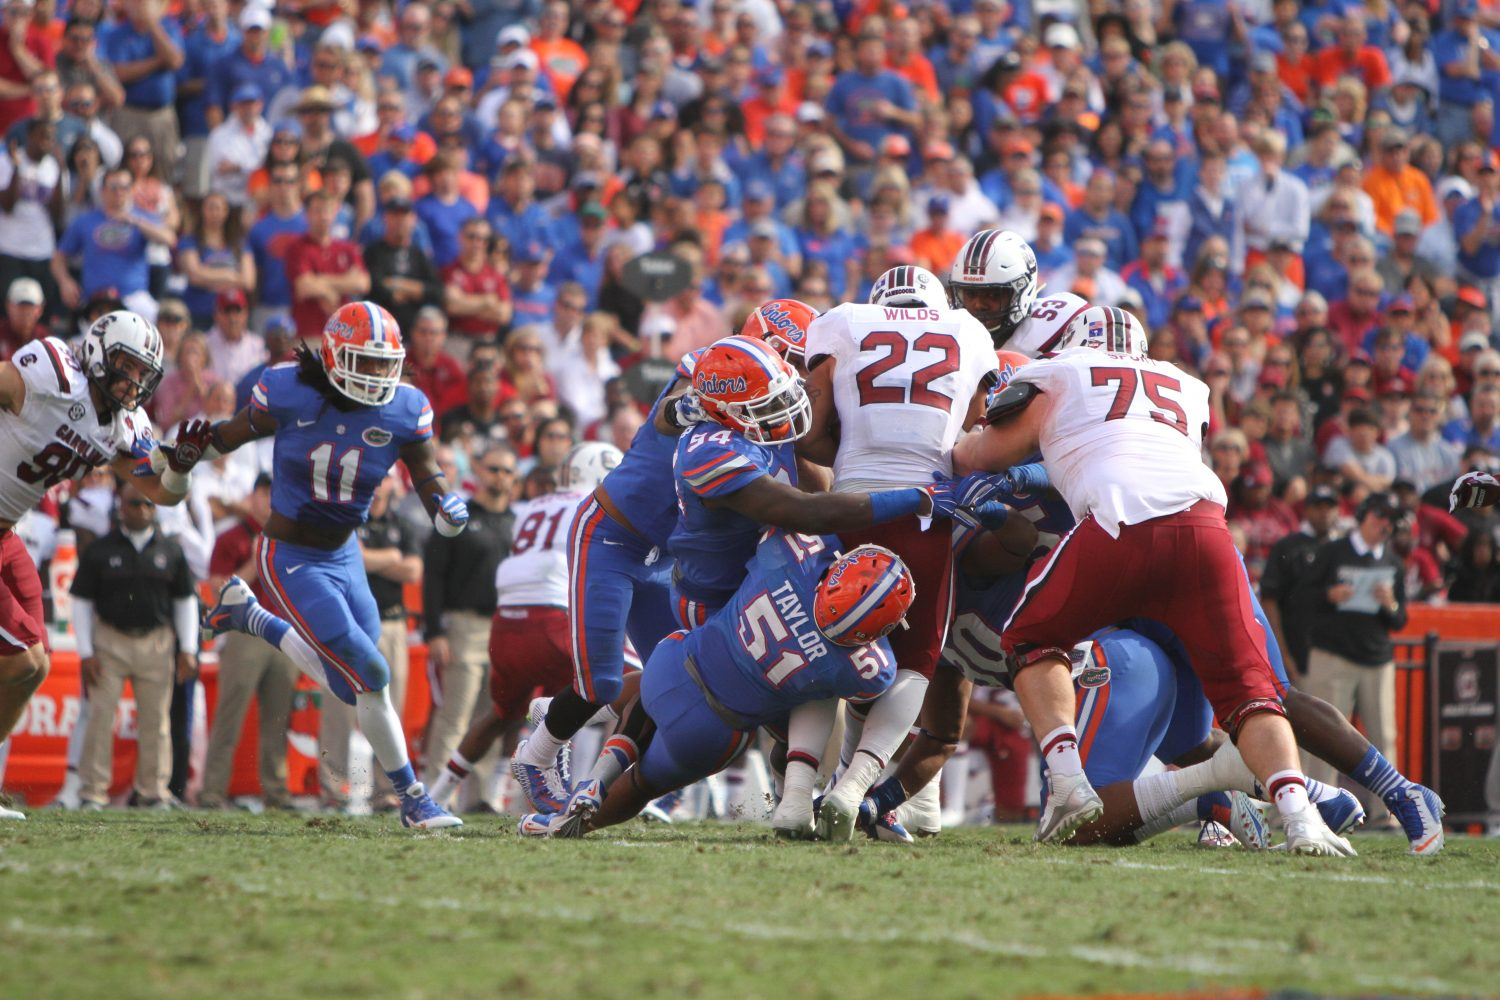 The Gator defense swarms Wilds.